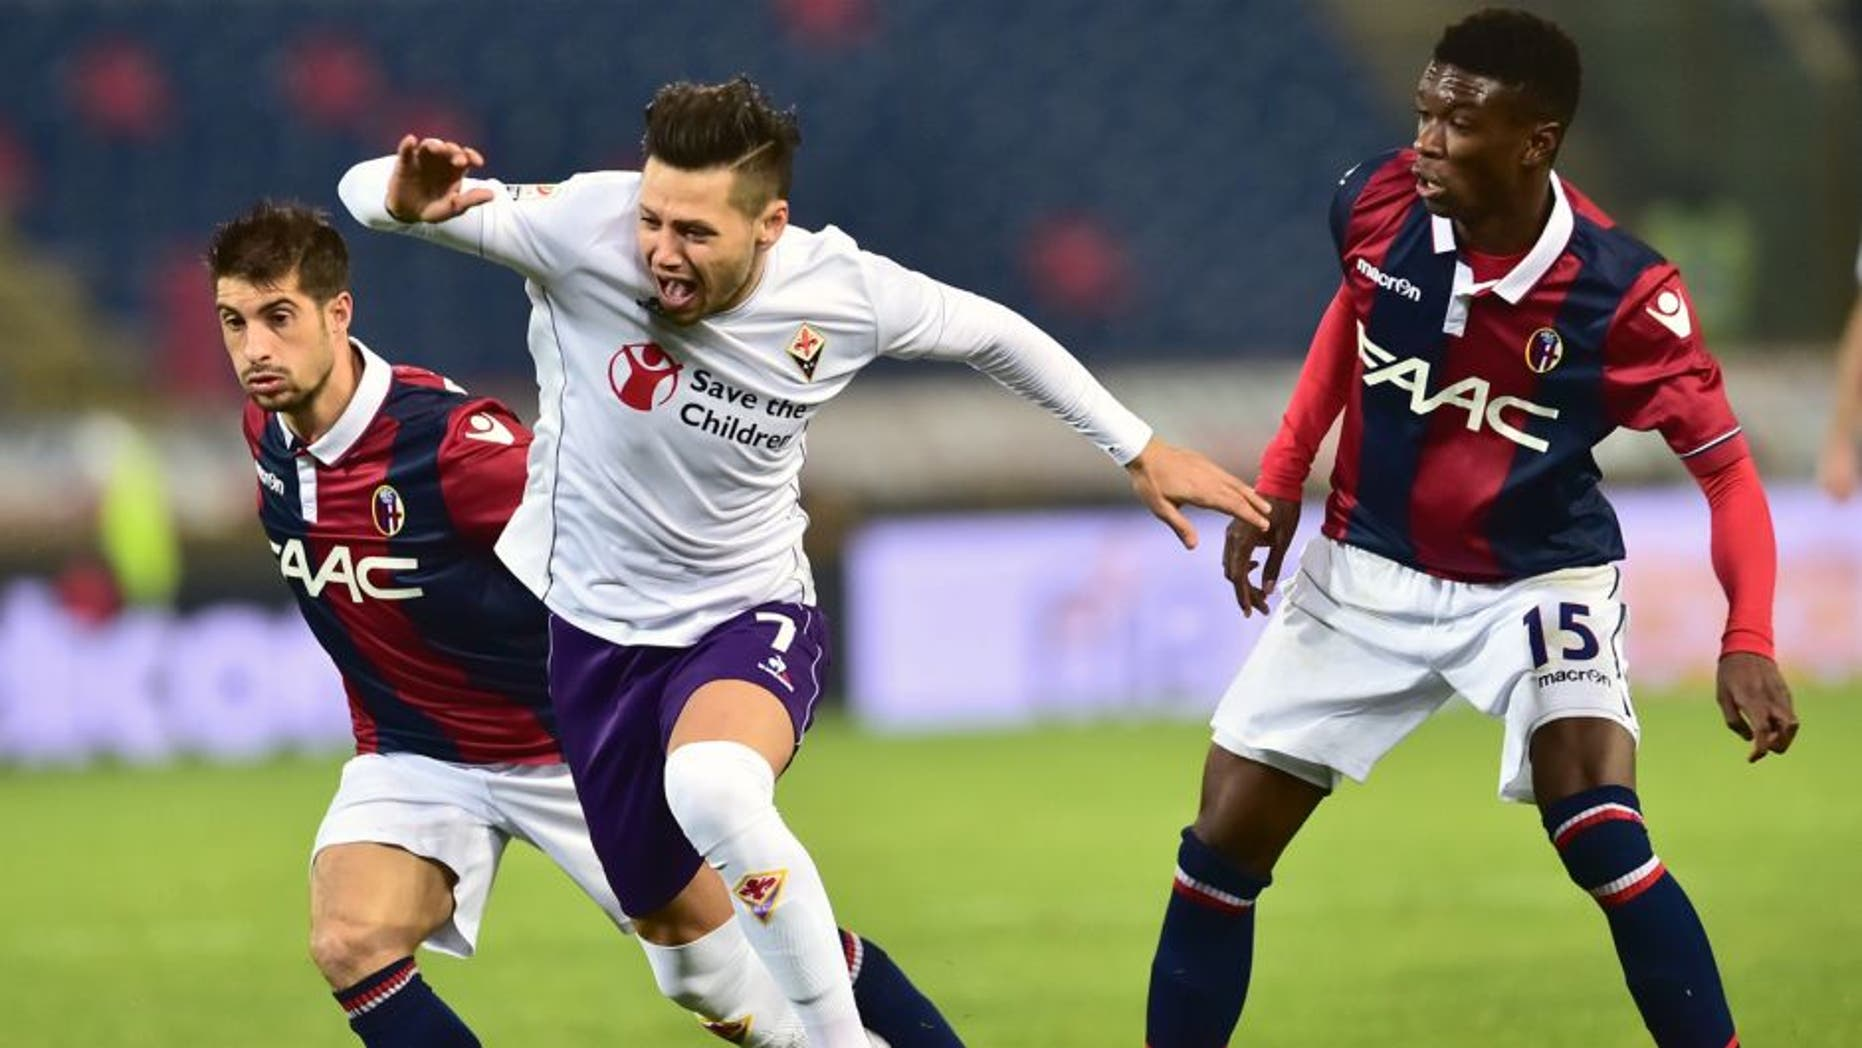 """Fiorentina's forward from Argentina Mauro Zarate (C) fights for the ball with Bologna's defender from Senegal Ibrahima Mbaye and Bologna's forward from Italy Franco Brienza (L) during the Italian Serie A football match Bologna vs Fiorentina at """"Renato Dall'Ara"""" Stadium in Bologna on Febrauary 6, 2016. / AFP / GIUSEPPE CACACE (Photo credit should read GIUSEPPE CACACE/AFP/Getty Images)"""